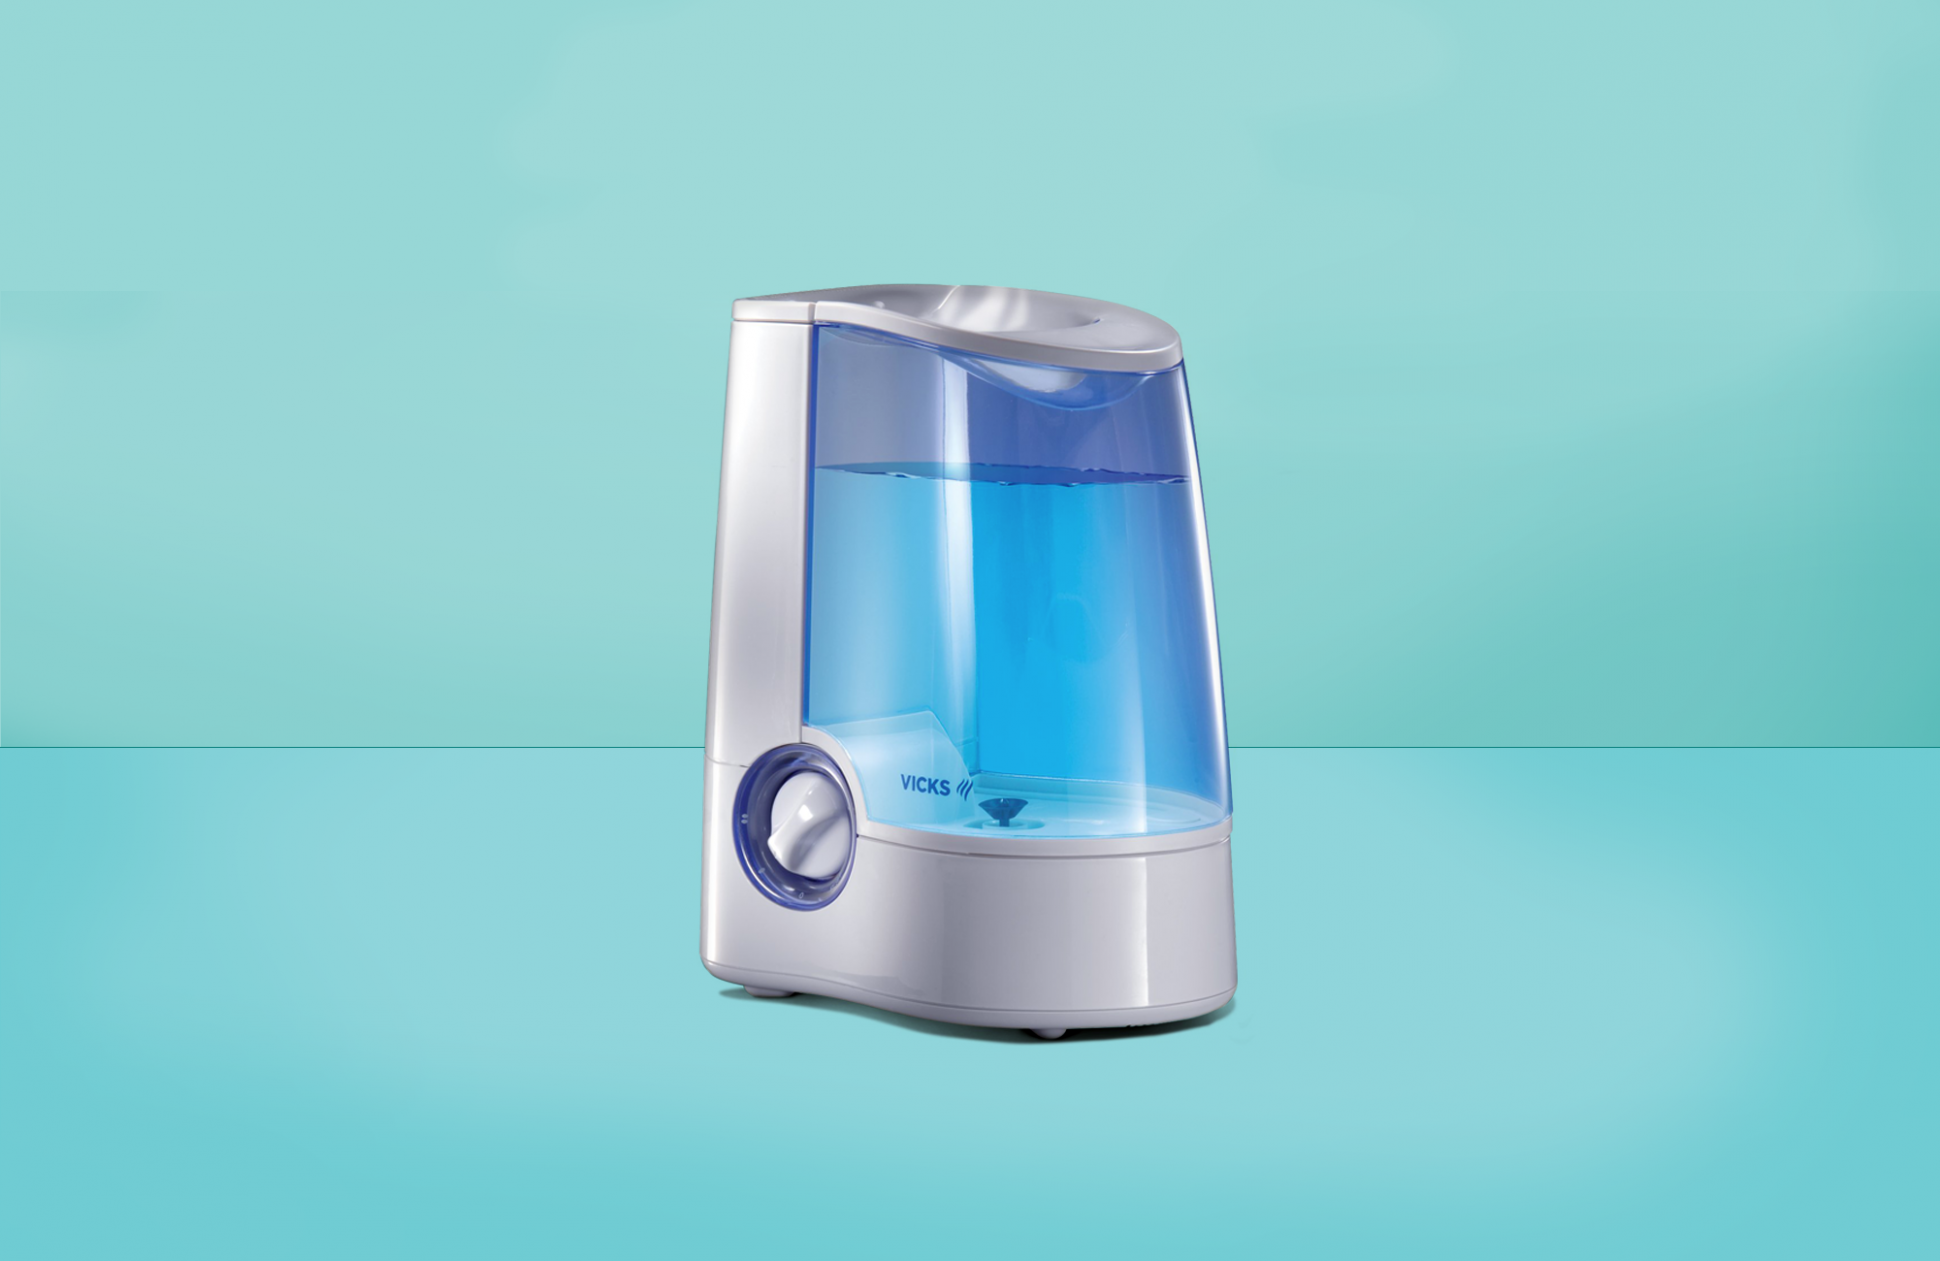 10 Best Baby Humidifiers 10 - Top Humidifier Benefits for Babies